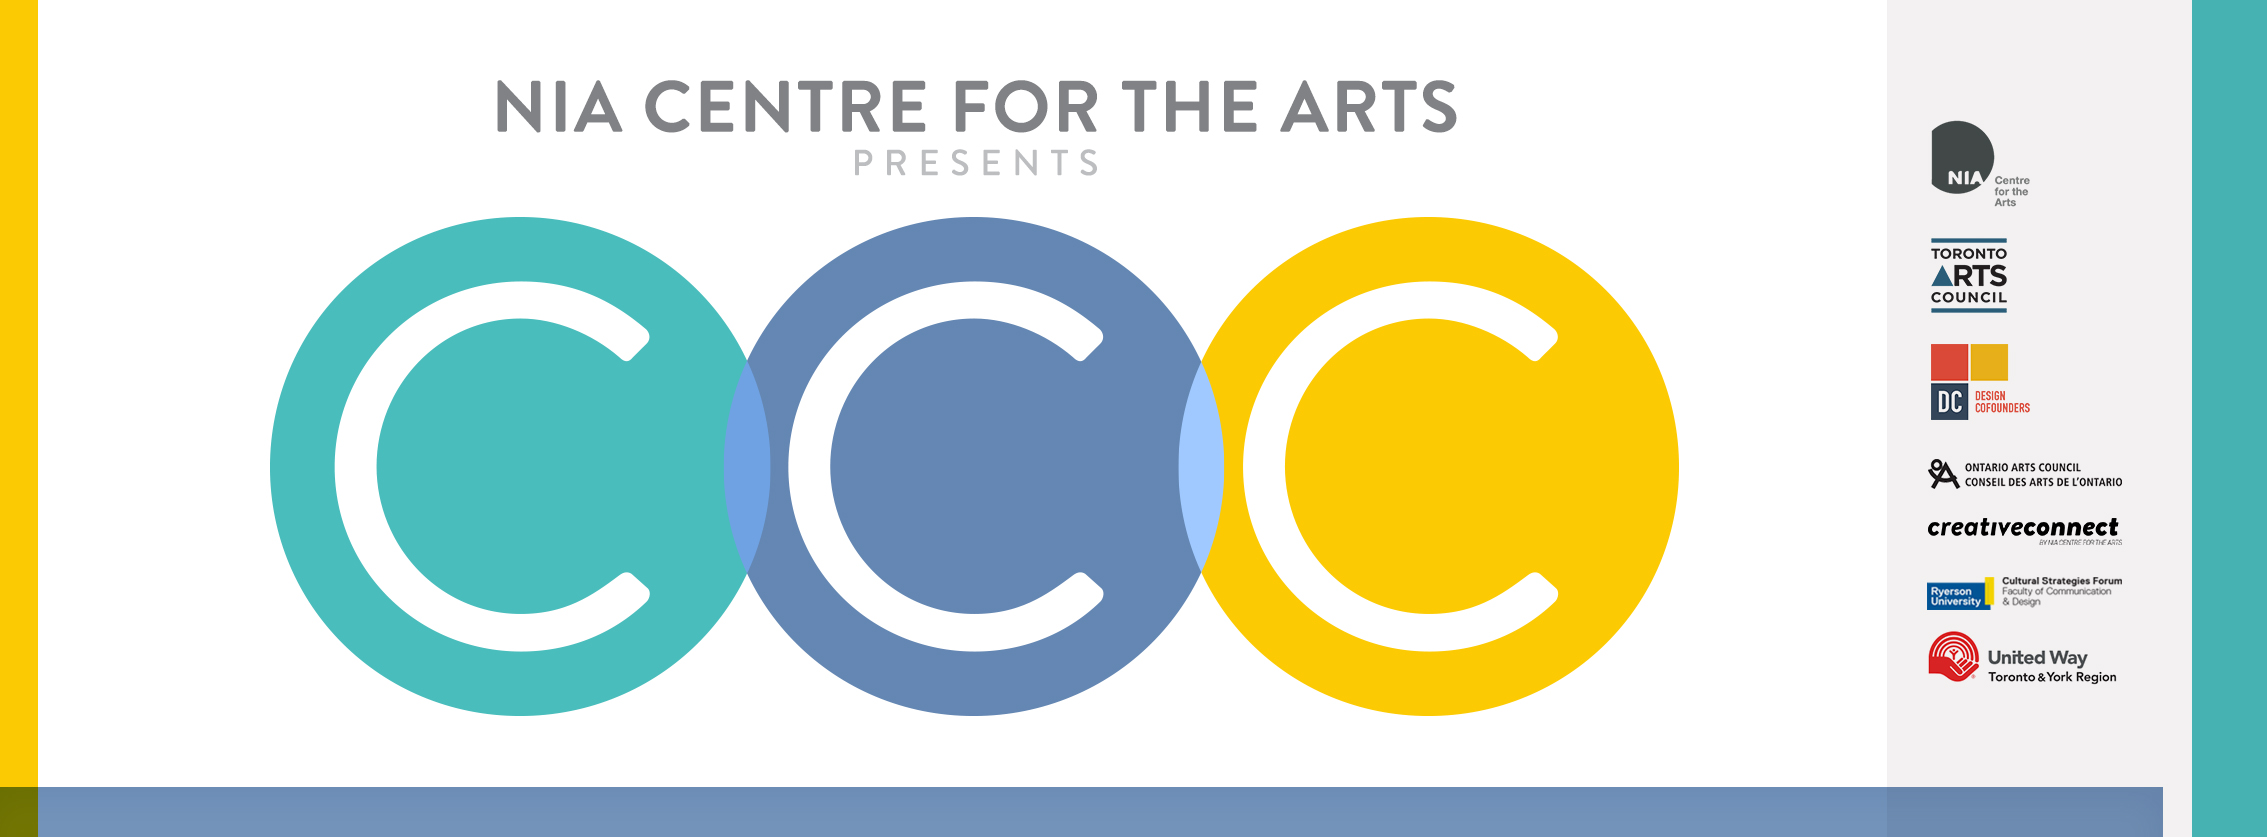 On May 27, 2016, CC welcomed 140 artists and creatives to Ryerson University to their inaugural Creative Connect Conference, a day full of interactive workshops and forums lead by creative professionals, hiring managers and entrepreneurs.